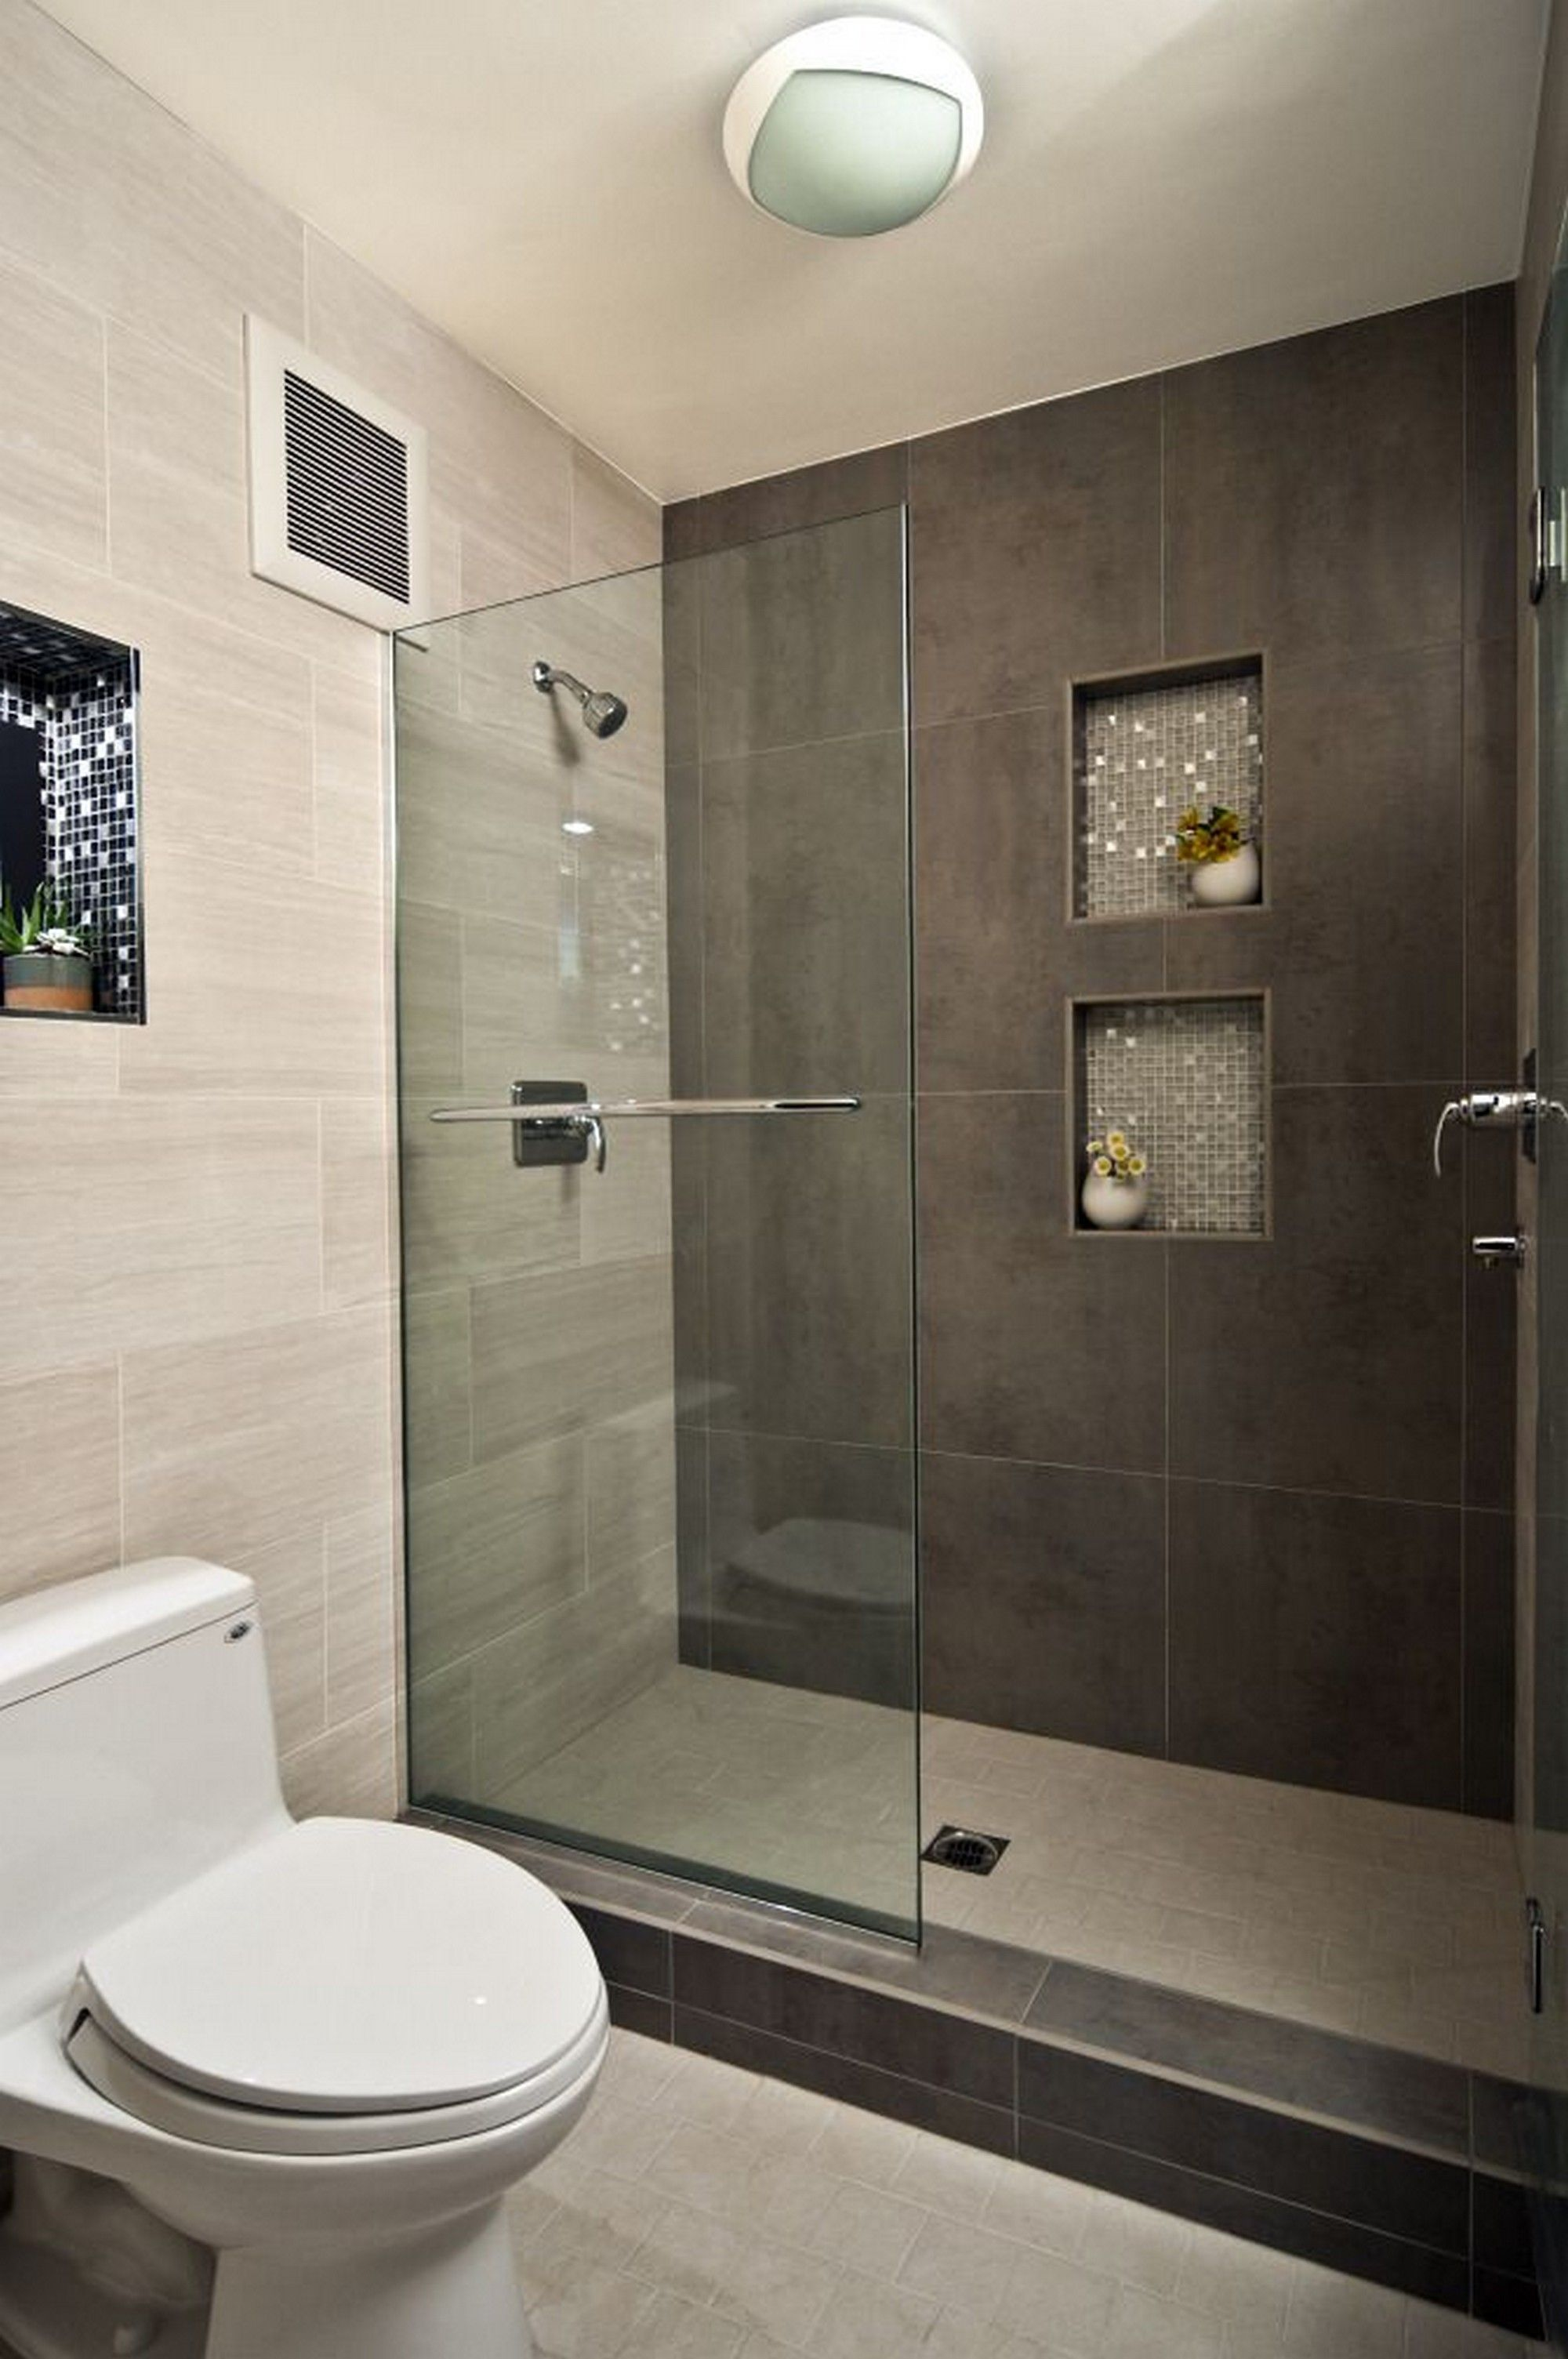 Modern bathroom design ideas with walk in shower small bathroom bathroom designs and small - Bathroom shower ideas ...